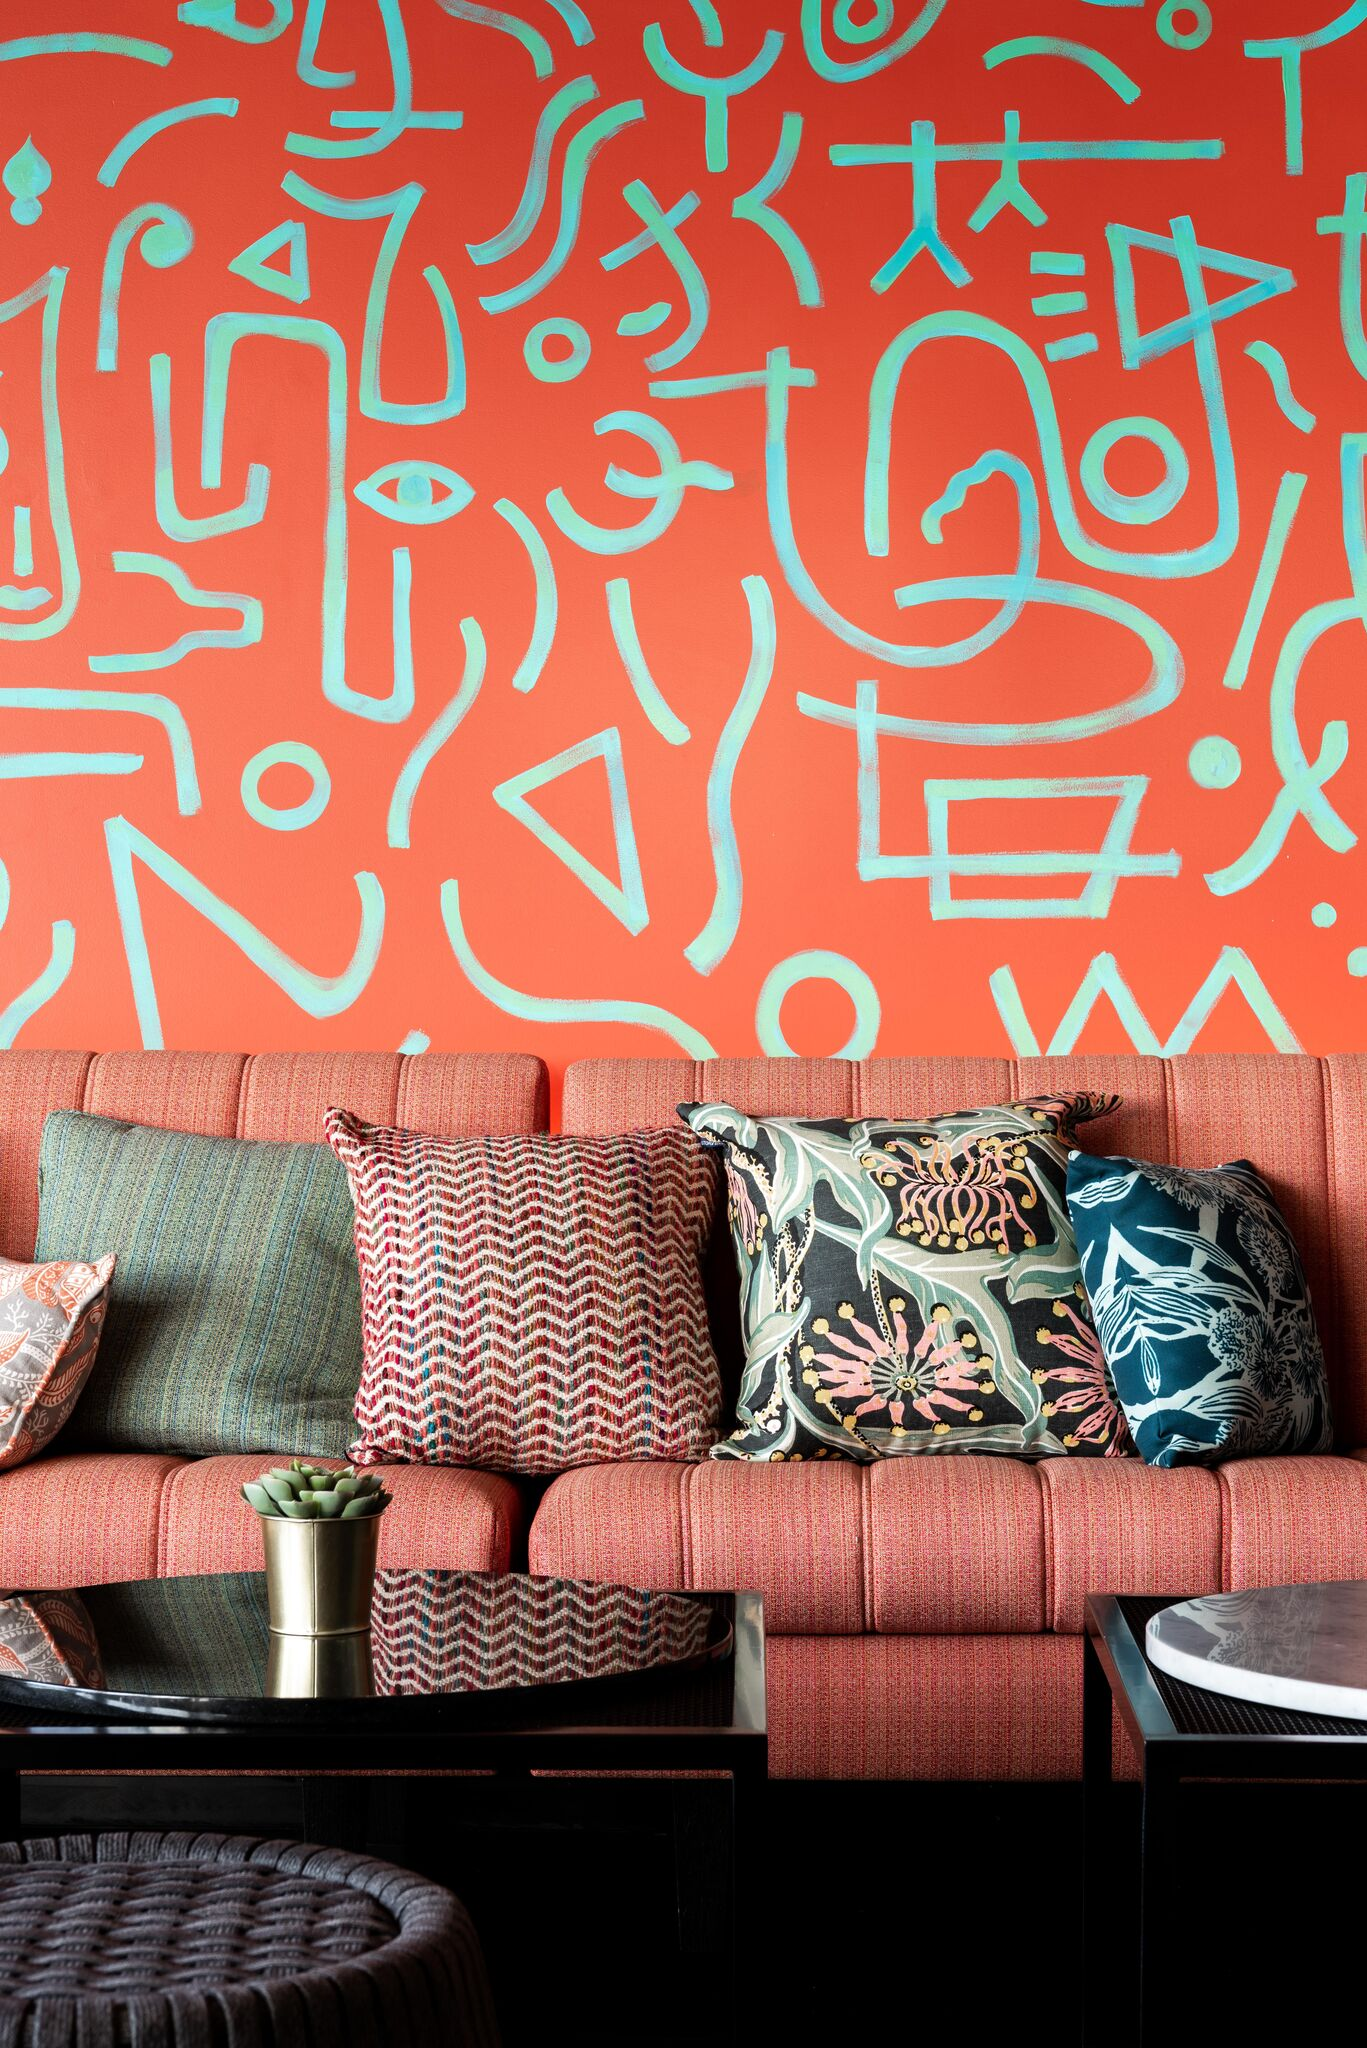 Gallery Of Qt Perth By Nic Graham Local Australian Design & Interiors Perth, Wa Image 11